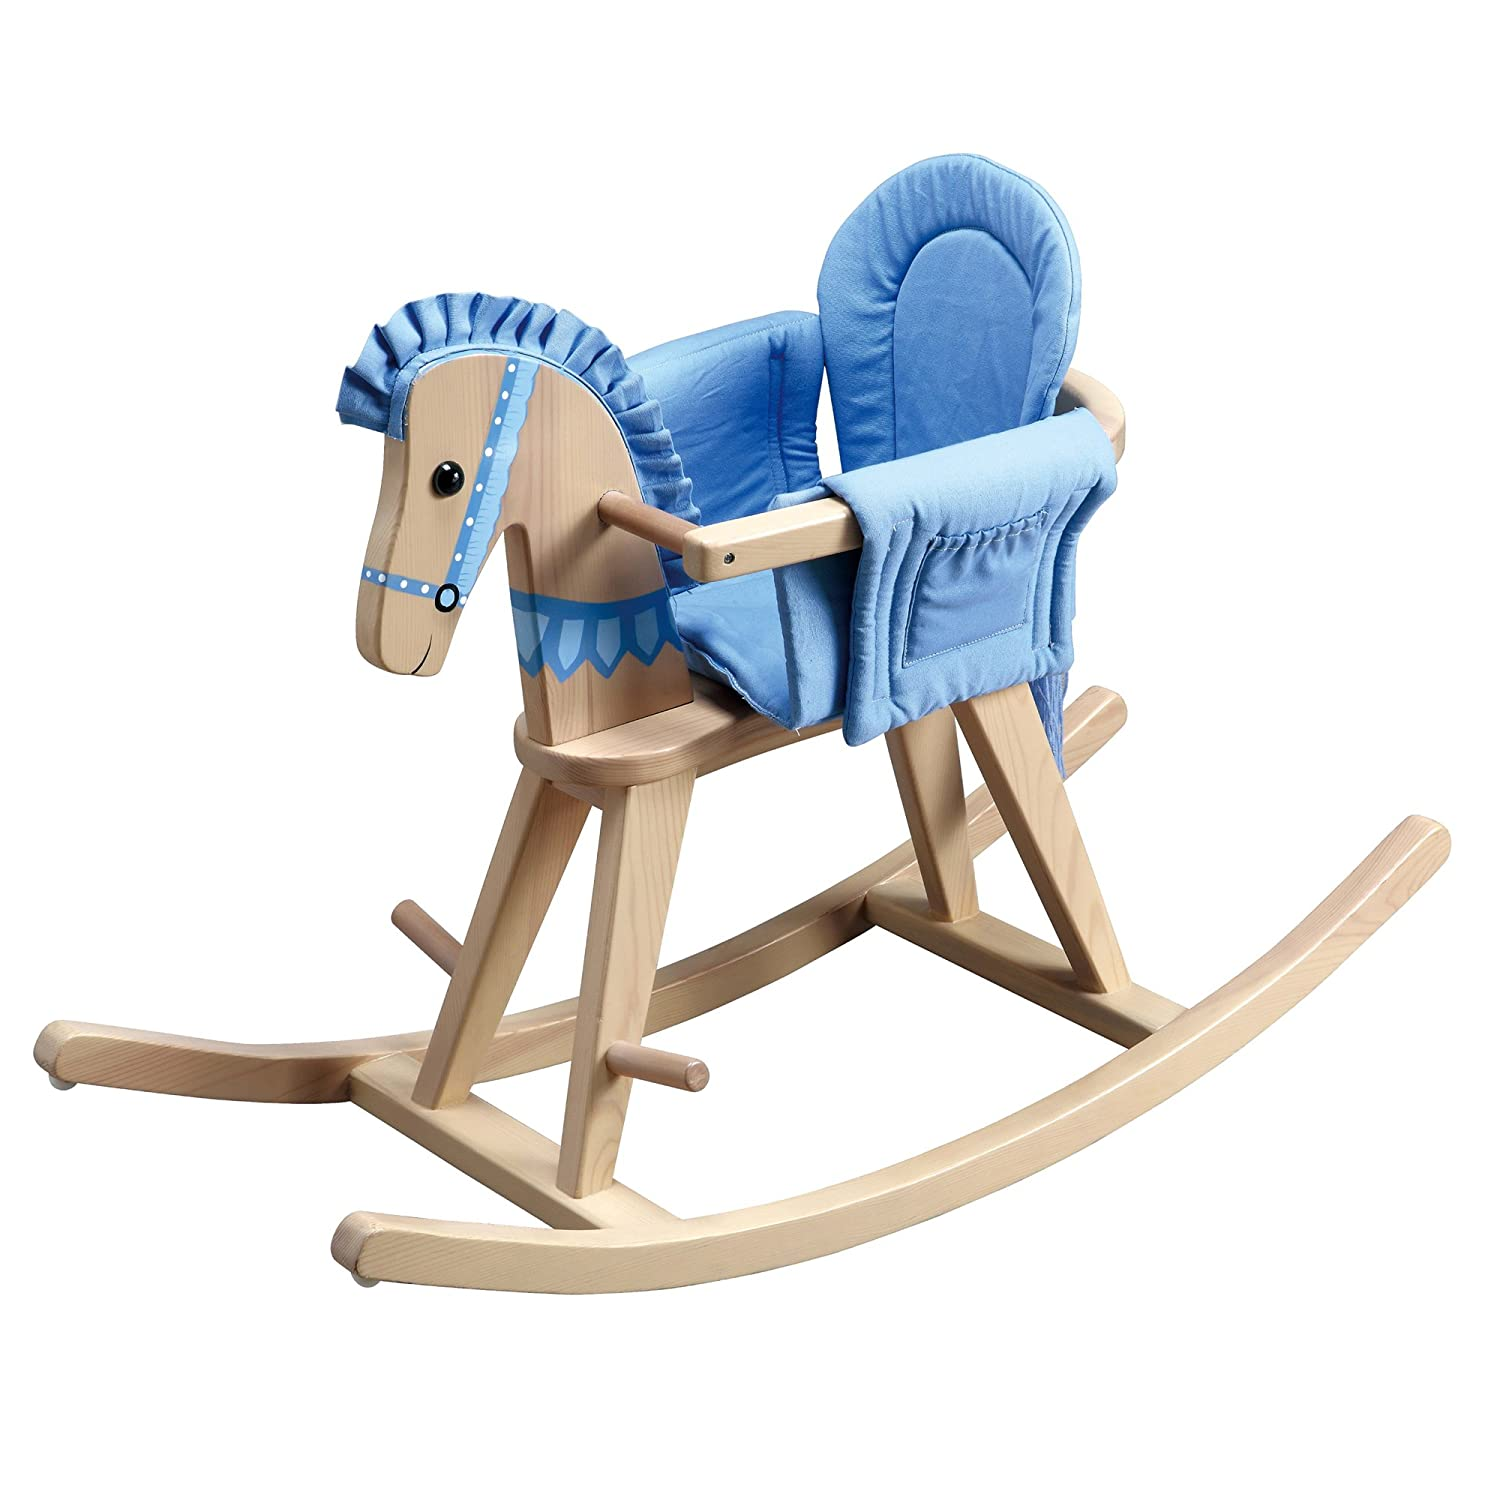 Teamson Kids - Safari Wooden Rocking Horse with Removeable Safety Surrond Pad for Toddlers - Natural/Blue TD-0002A